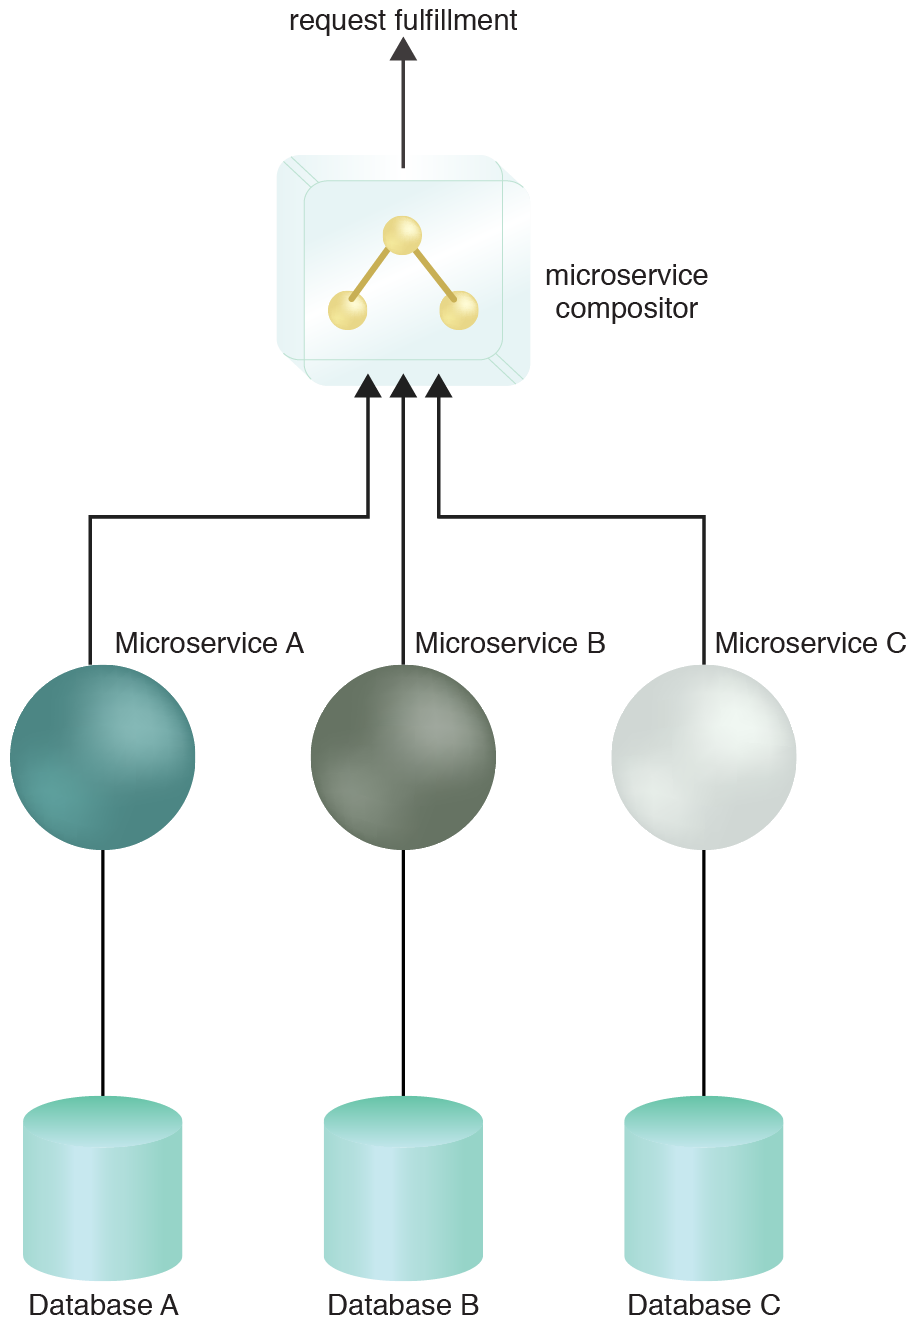 Microservice Compositor: The microservice compositor composes Microservices A, B and C to complete a business task. In this scenario, the service compositor resides in its own container.